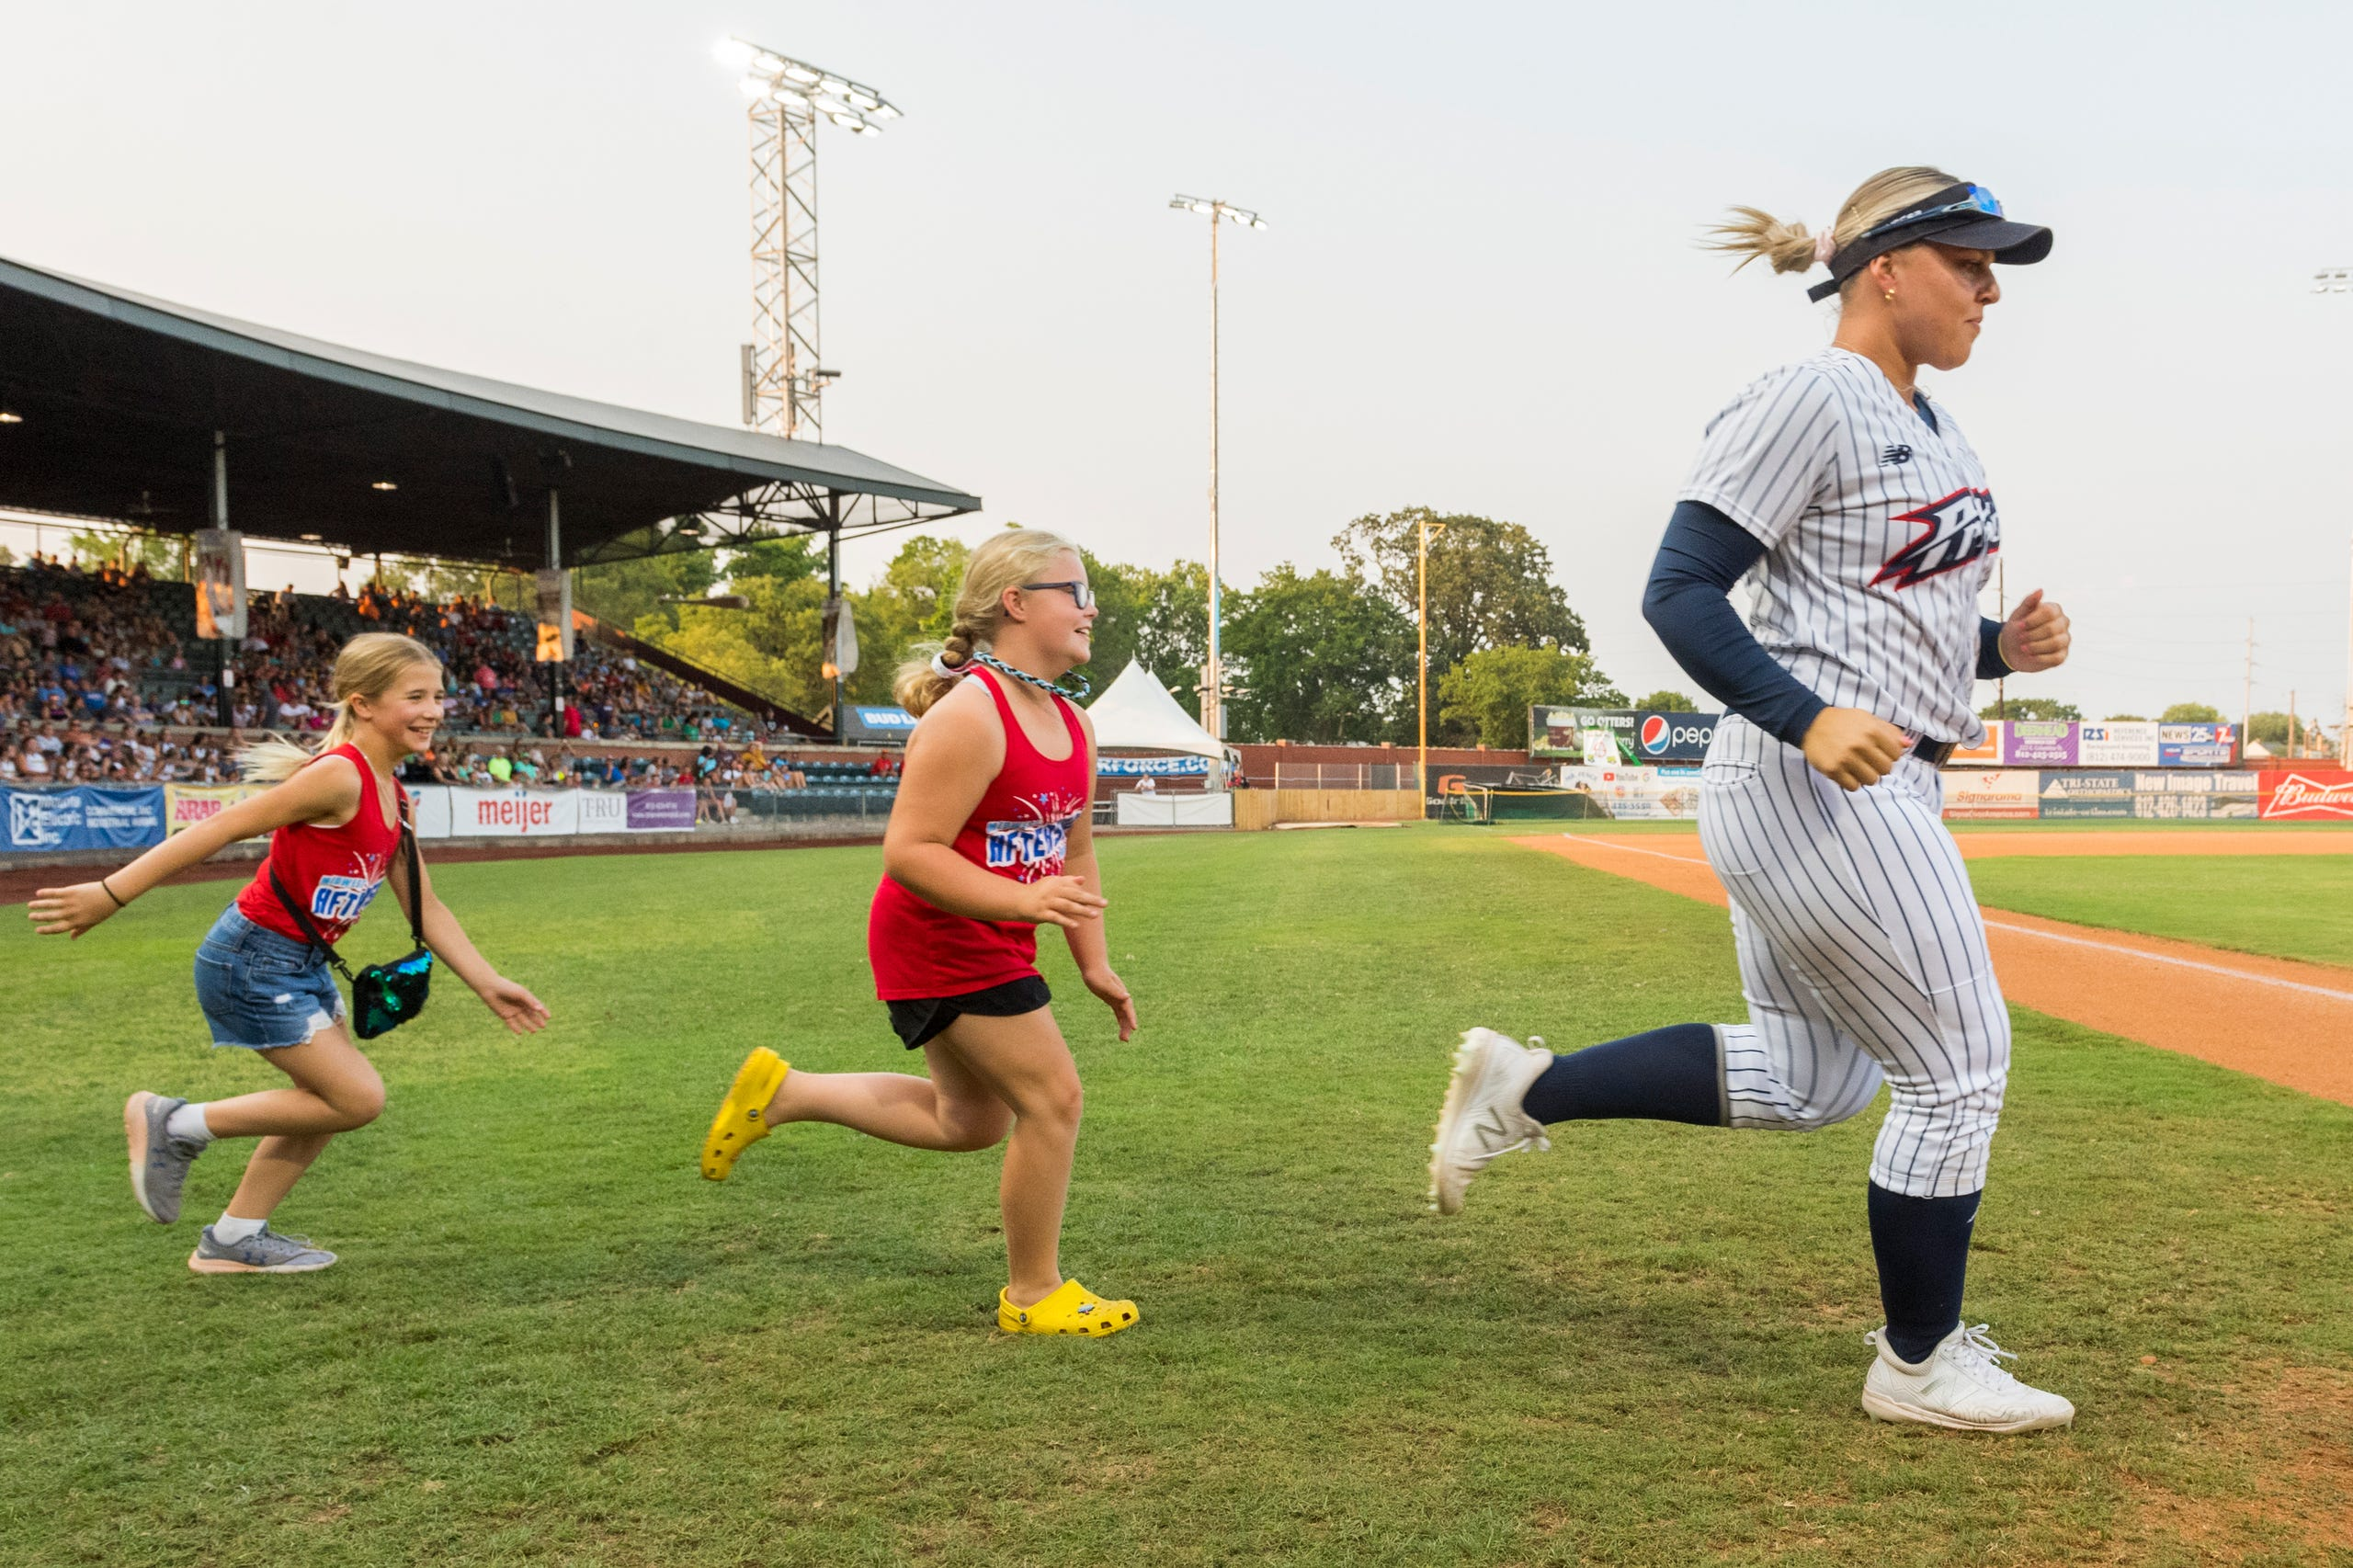 USSSA Pride's Amanda Lorenz (18) is followed onto the field by Midwest Aftershock's Kaylie HaberKamp, left, and Emma Bottcher, center, ahead of the exhibition game between USSSA Pride and Team Florida at Bosse Field in Evansville, Ind., Wednesday evening, July 14, 2021.